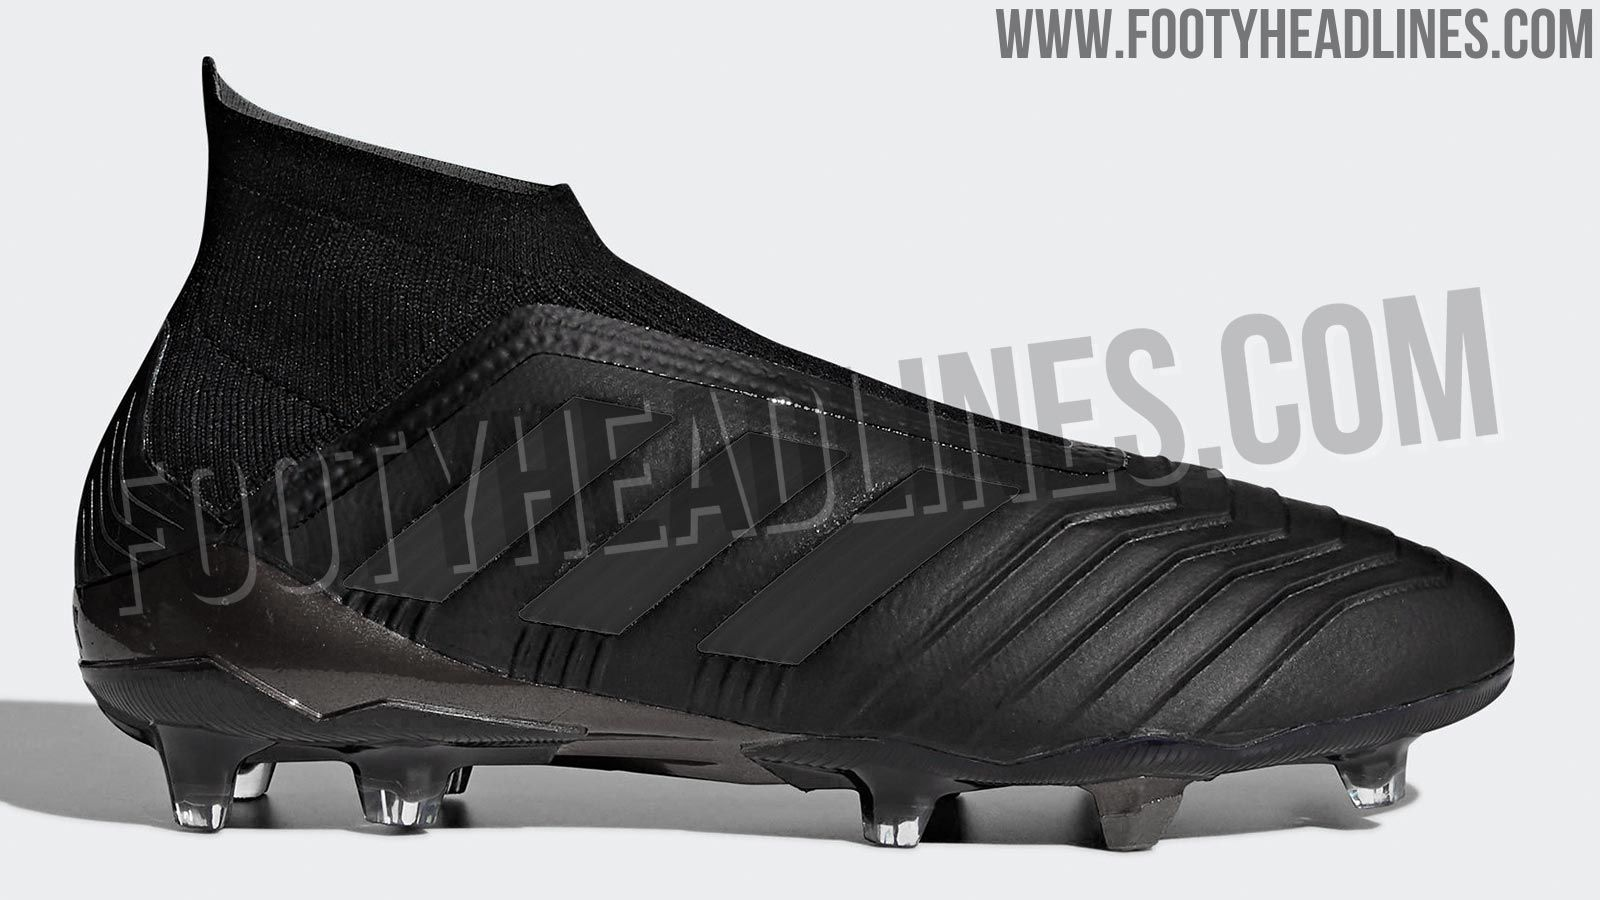 The Adidas Predator 18+ Nitecrawler football boots introduce a stealth look  to the latest iteration of the iconic 3 Stripes model 8c2624d41